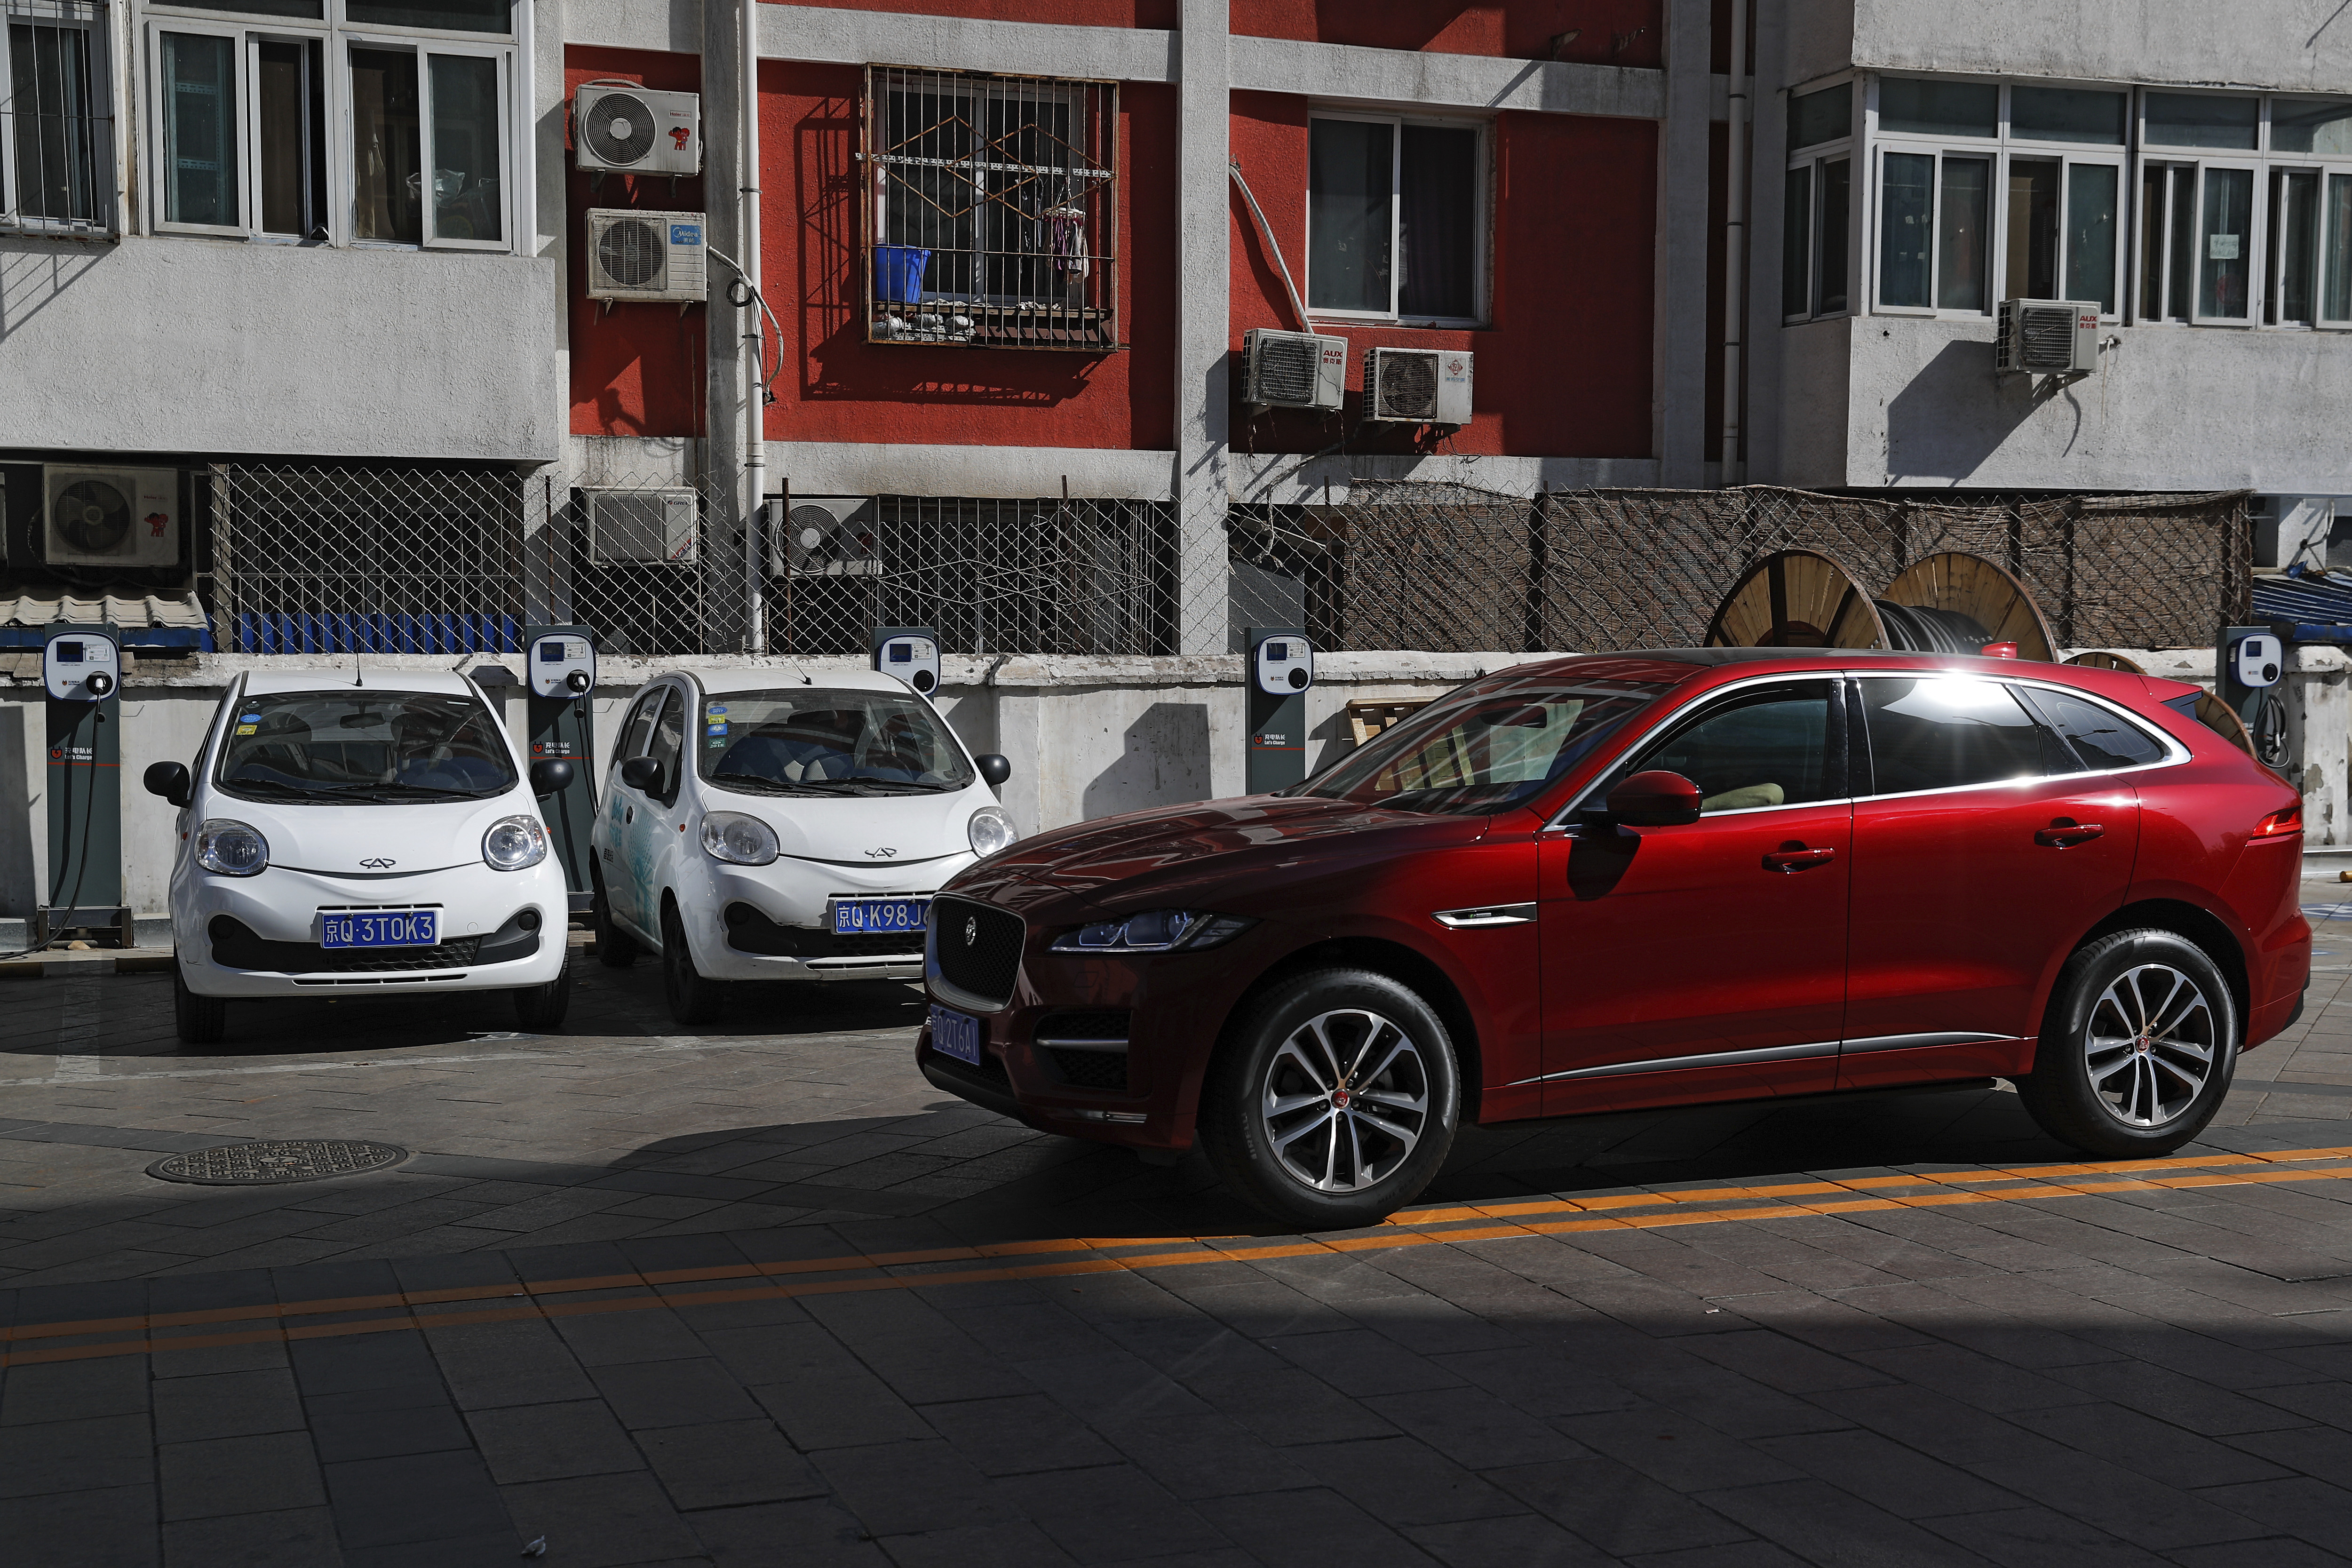 China Electric Car Dreams-3 In this Friday, April 14, 2017 photo, a SUV vehicle drives past electric cars parked at a charging station outside a residential building in Beijing. Automakers face a dilemma in China, where regulators are pressing them to sell electric cars but consumers want gas-guzzling SUVs. This month's Shanghai auto show, the industry's biggest marketing event of the year, will showcase efforts to create electric models Chinese drivers want to buy. (AP Photo/Andy Wong)